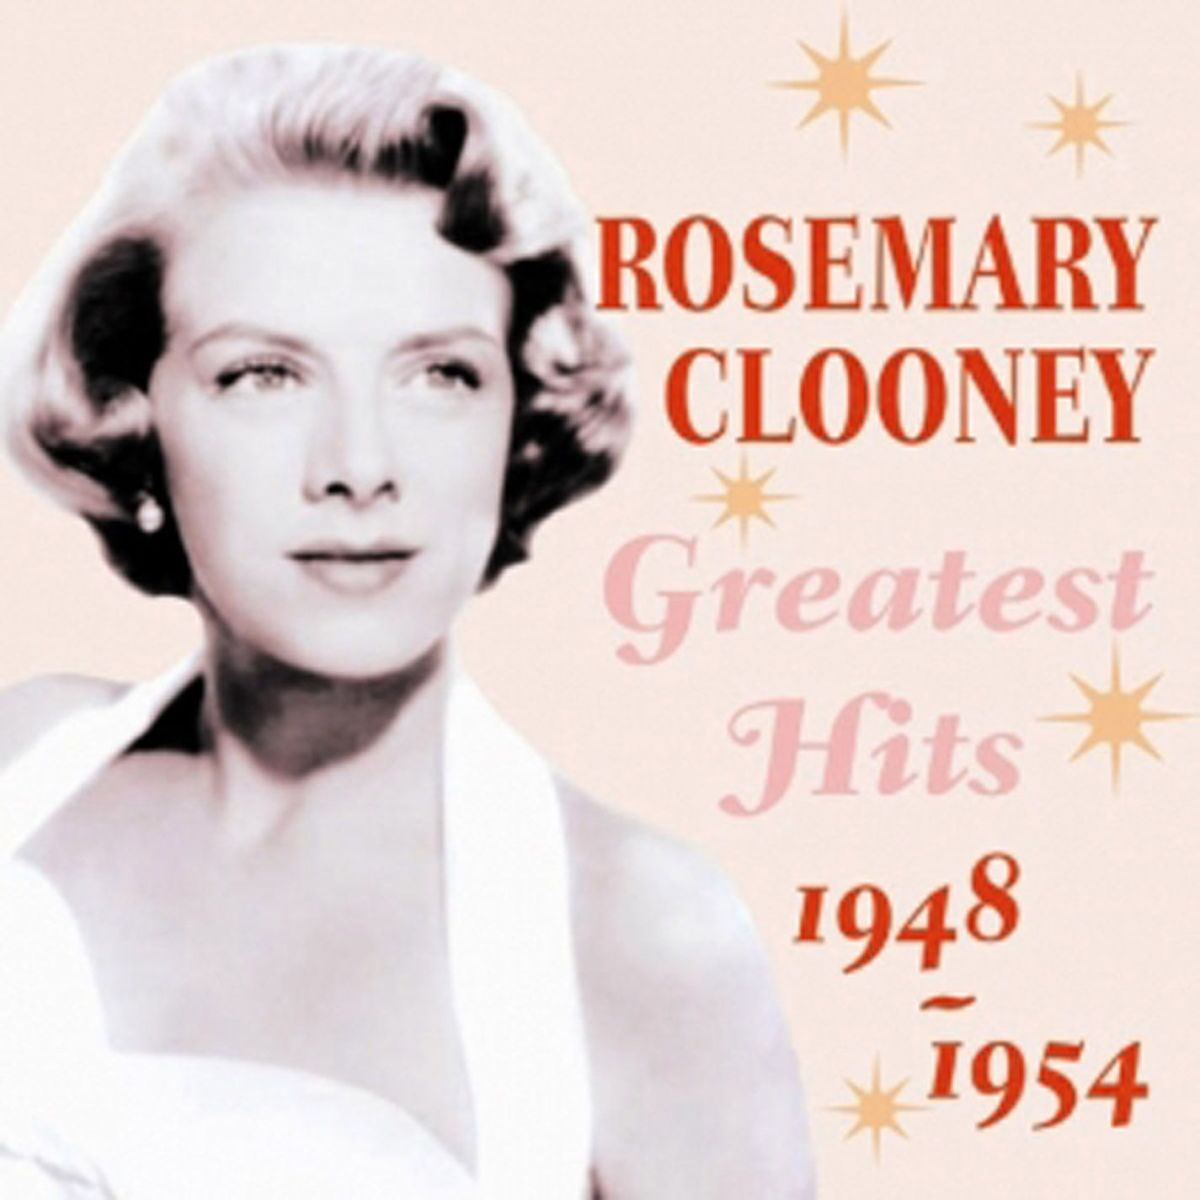 Botch-A-Me by Rosemary Clooney features in Season 1